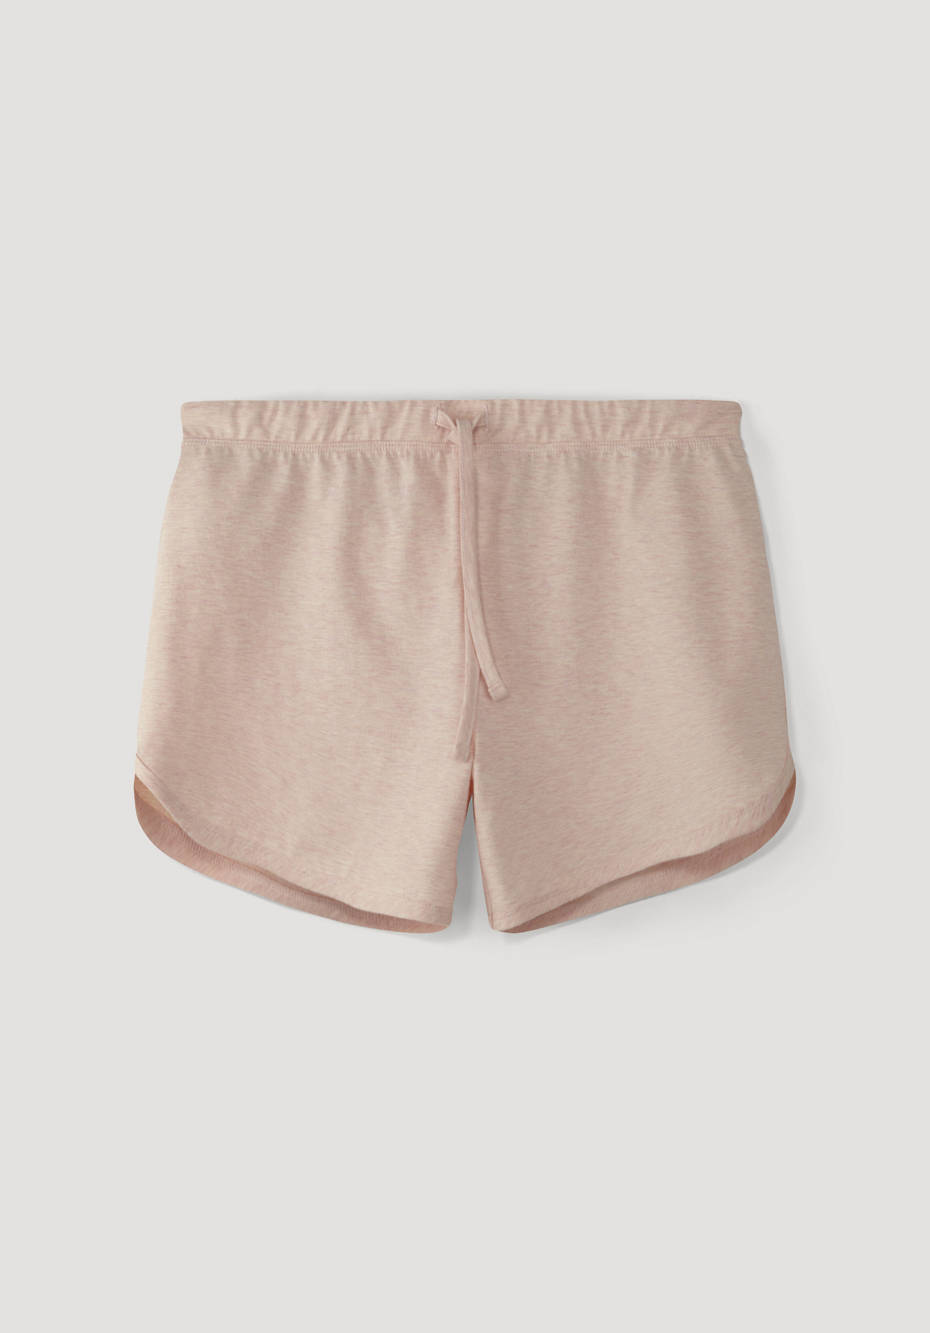 Sleep shorts made from pure organic cotton